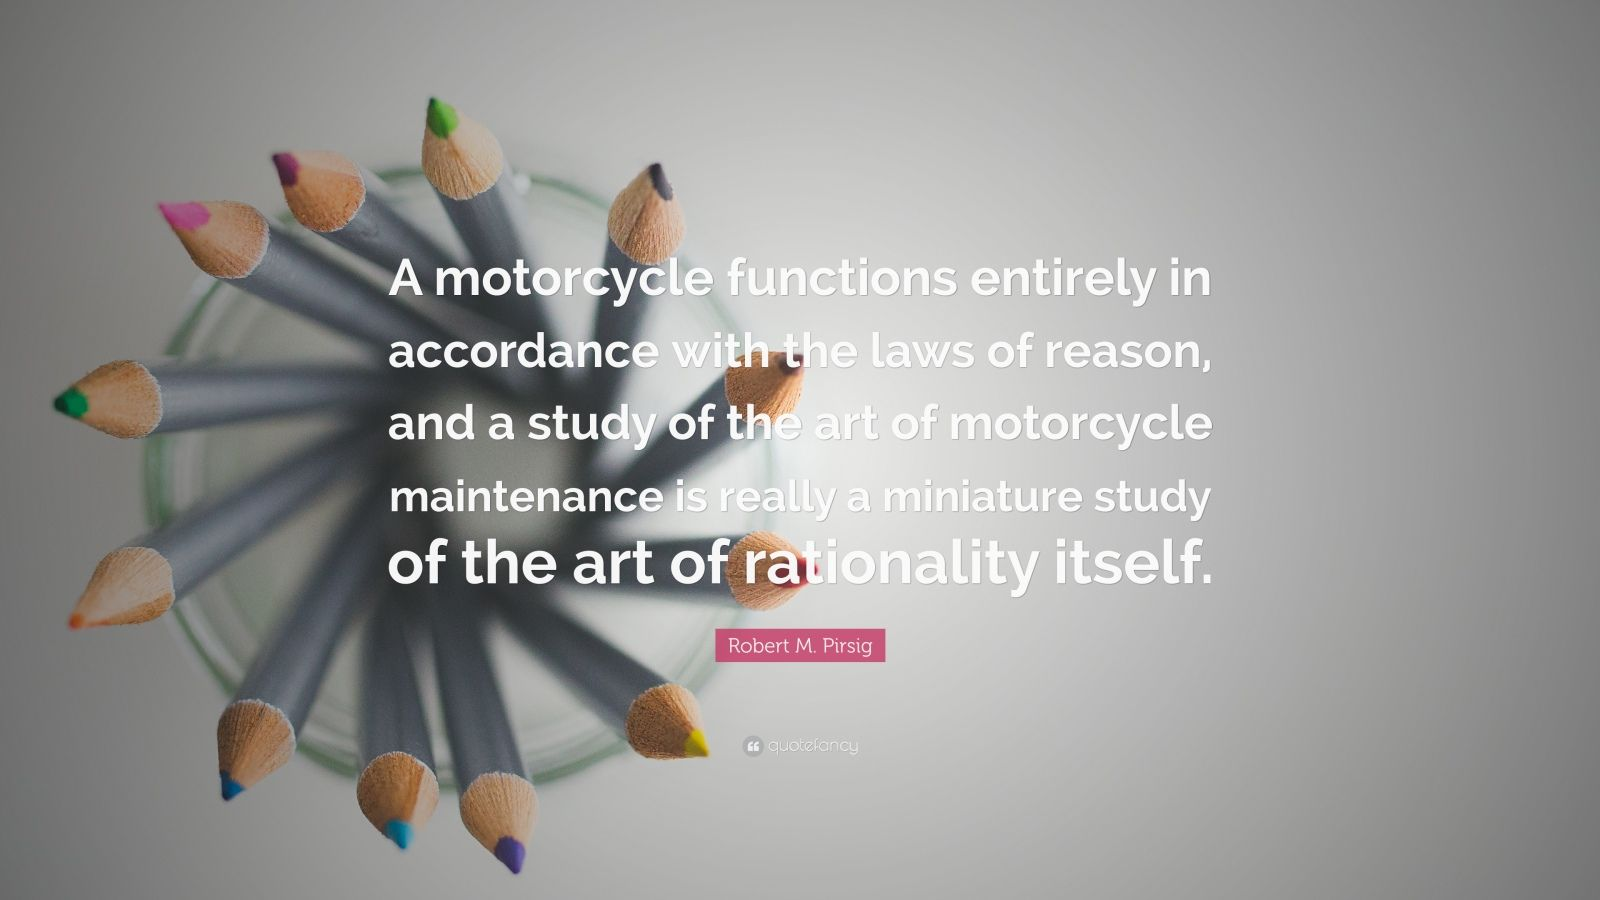 """Robert M. Pirsig Quote: """"A motorcycle functions entirely in accordance with the laws of reason, and a study of the art of motorcycle maintenance is really a miniature study of the art of rationality itself."""""""